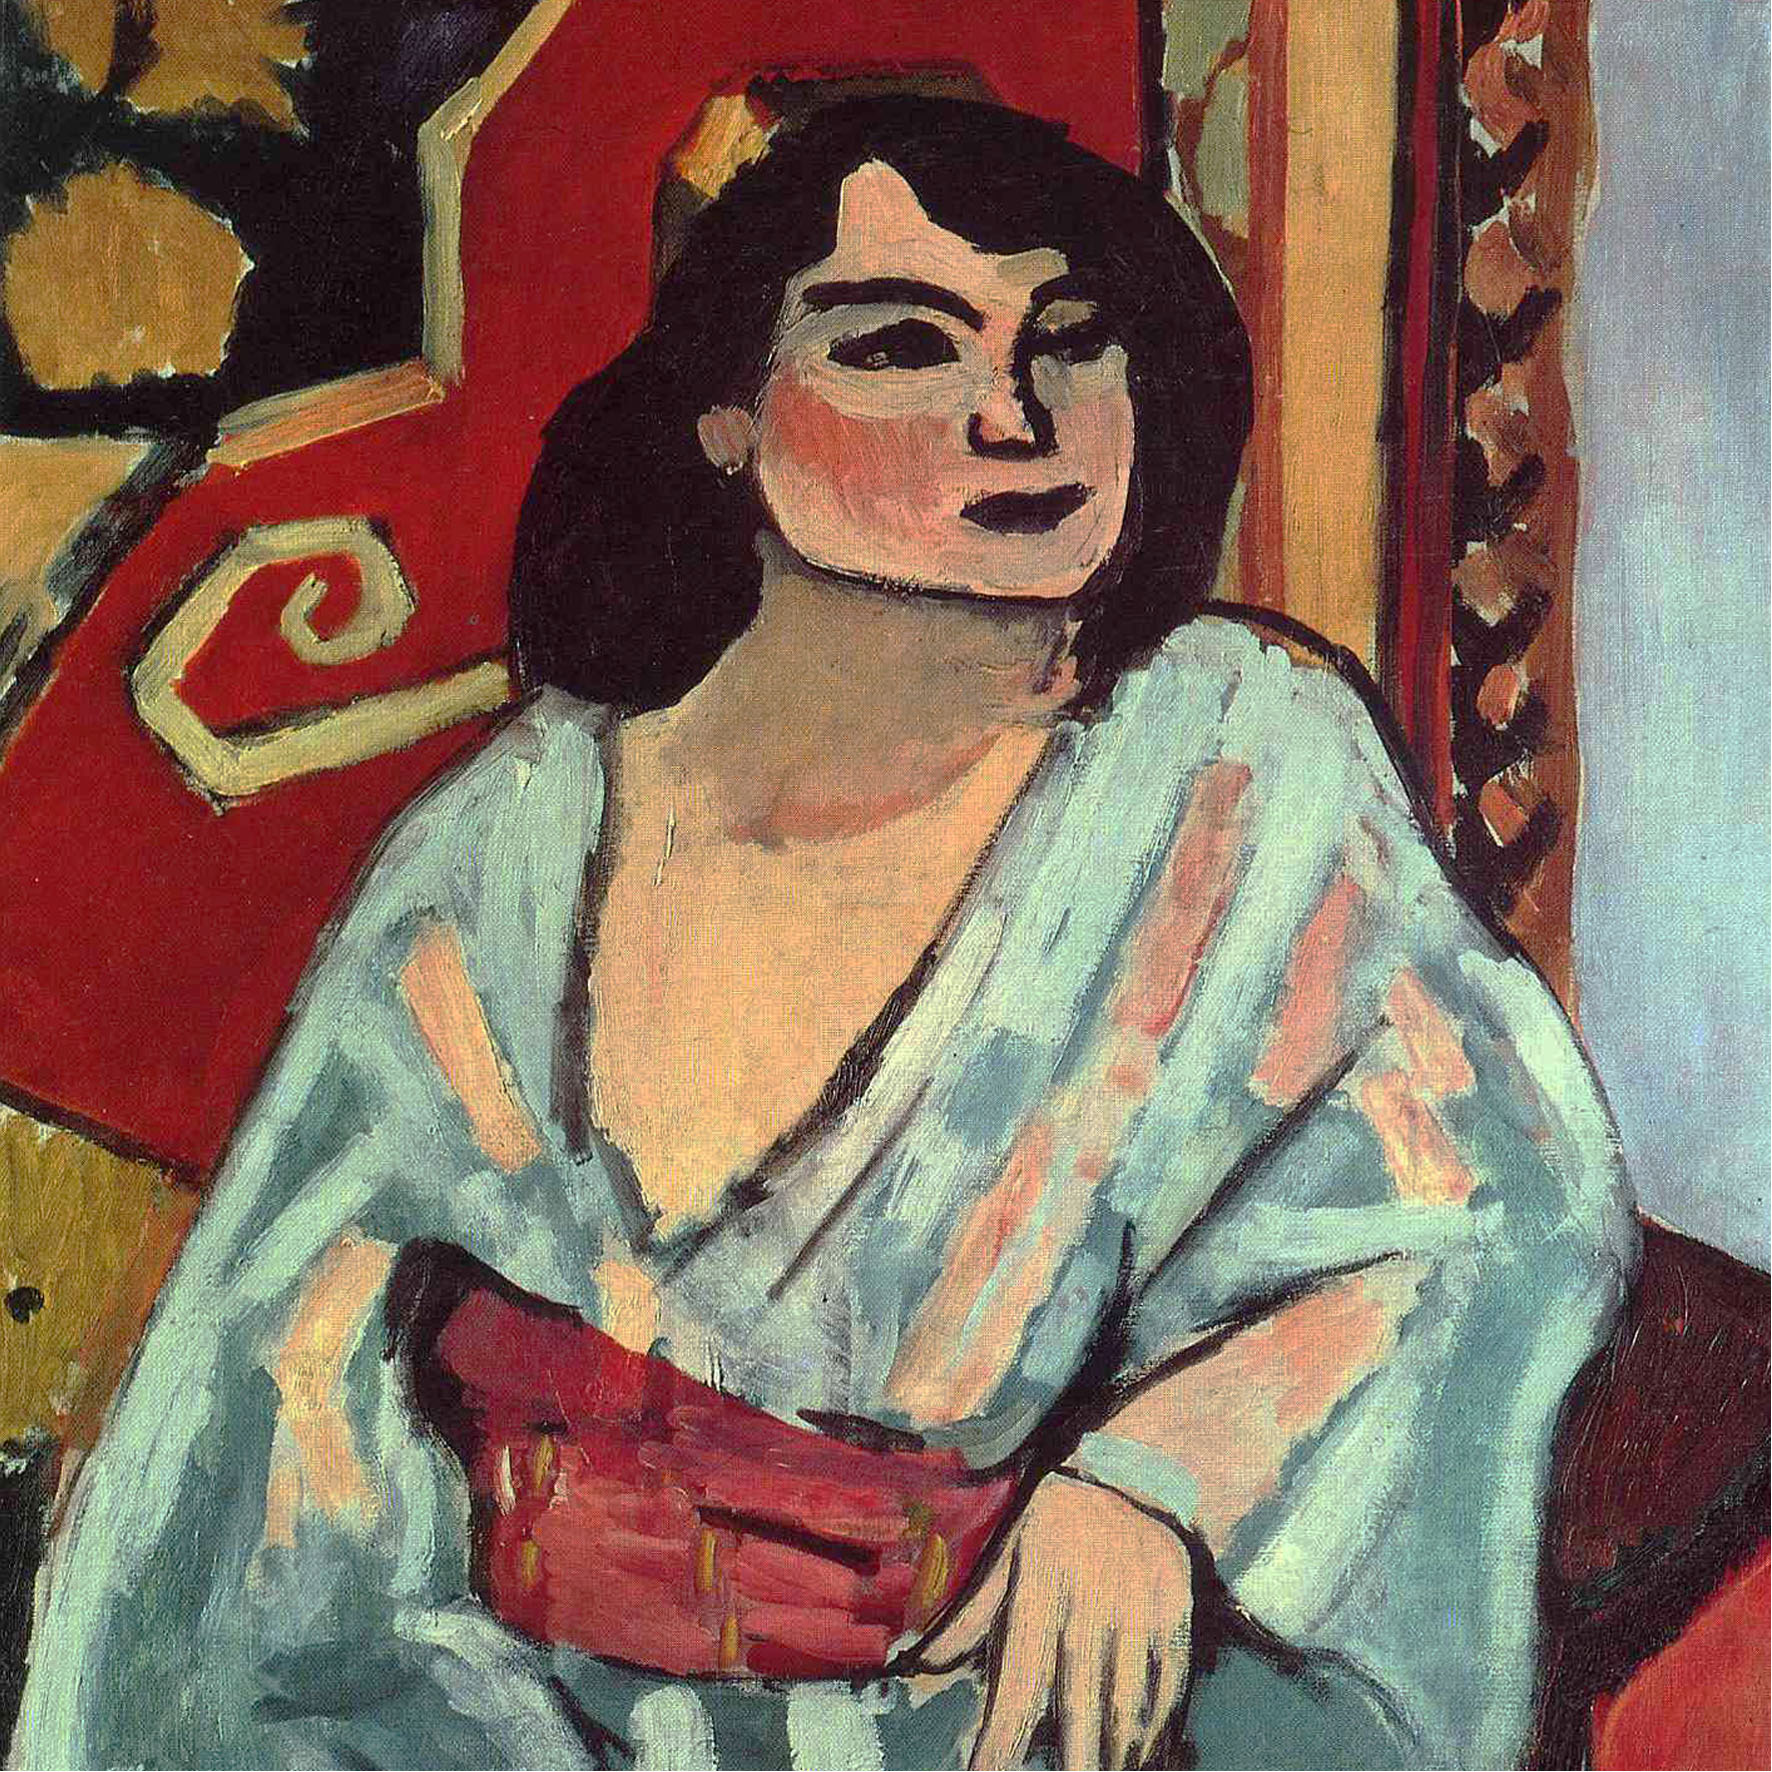 MATISSE IN HIS TIME: MASTERWORKS OF MODERNISM FROM THE CENTRE POMPIDOU, PARIS